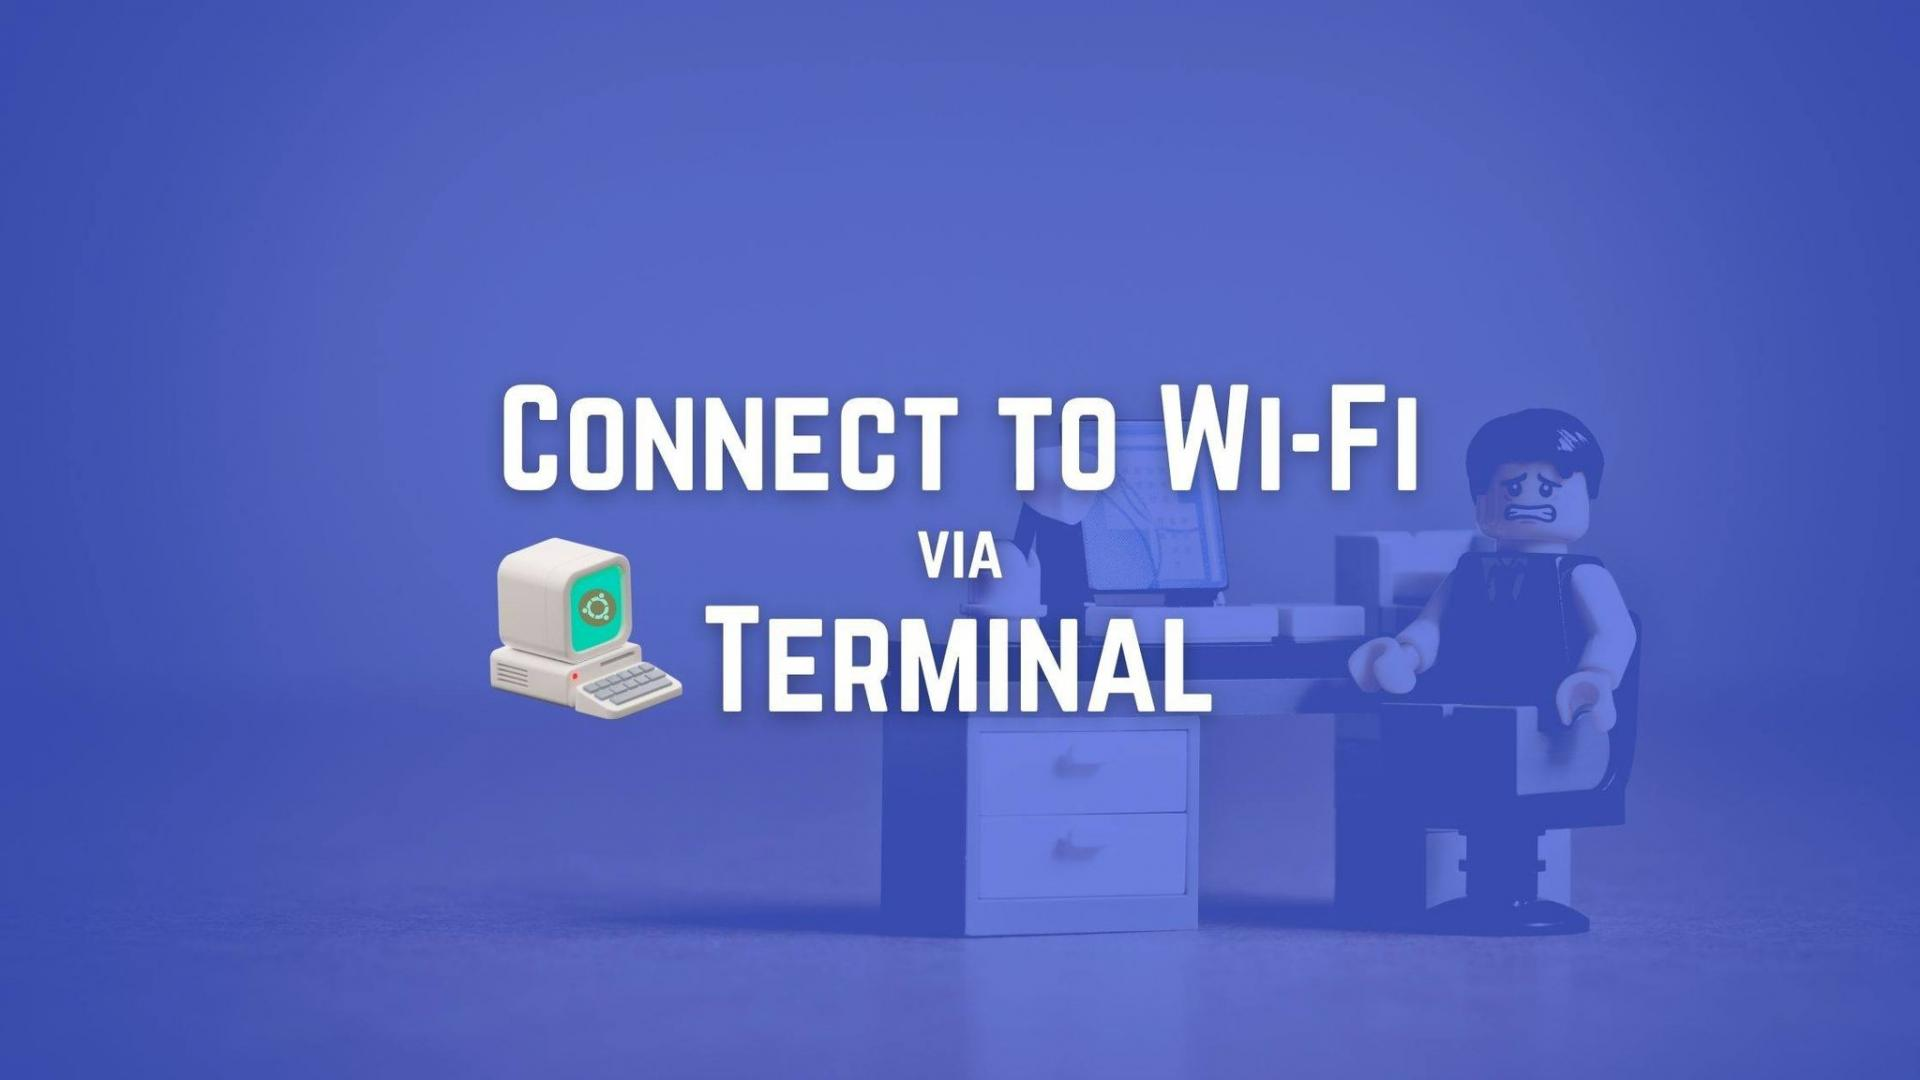 How to connect to Wi-Fi on Linux via the terminal using nmcli